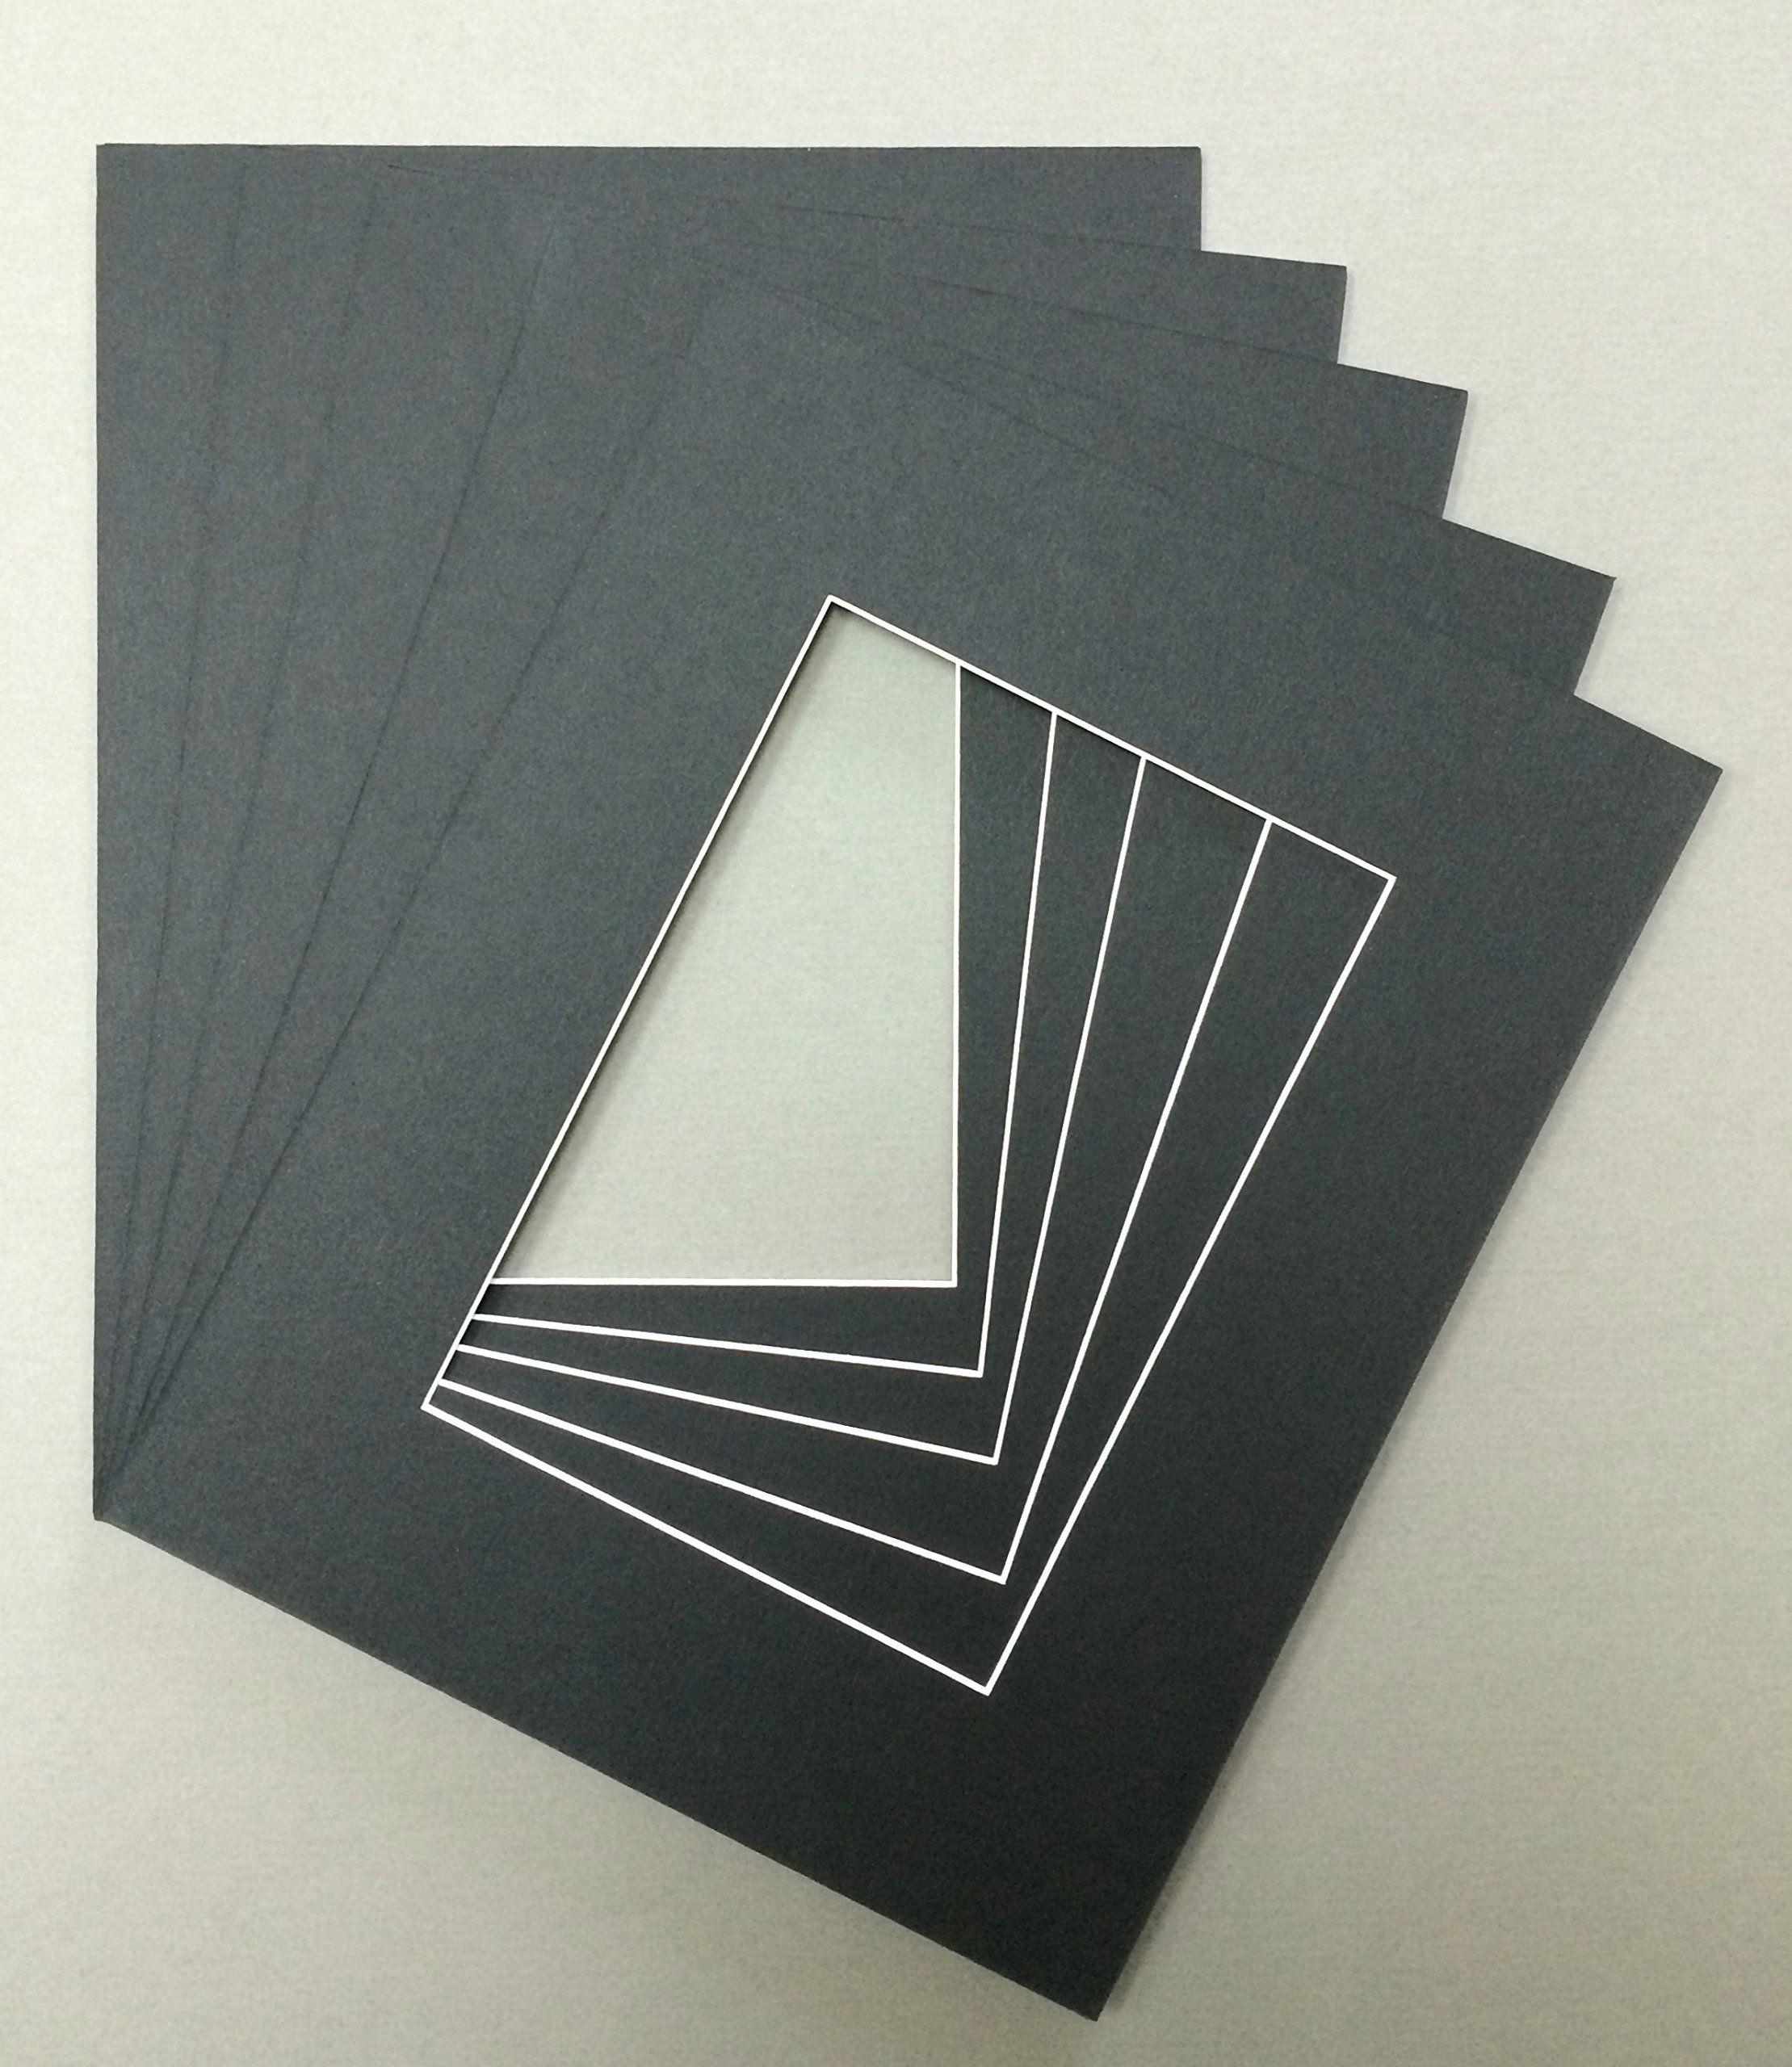 Pack of 5 24x36 Black Picture Mats with White Core, for 20x30 Pictures